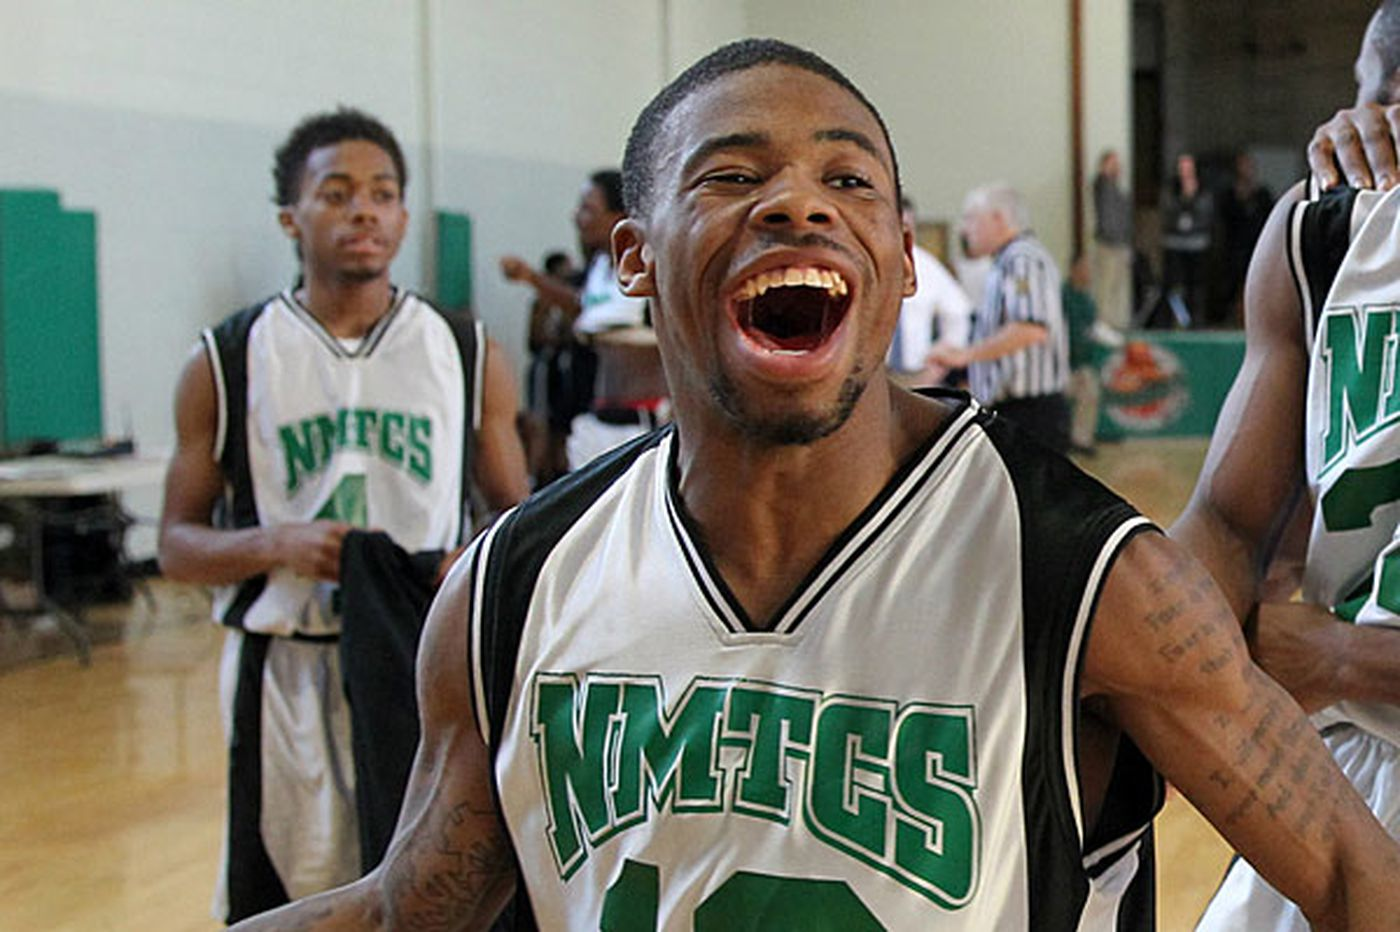 Basketball star dies from injuries, gunman charged